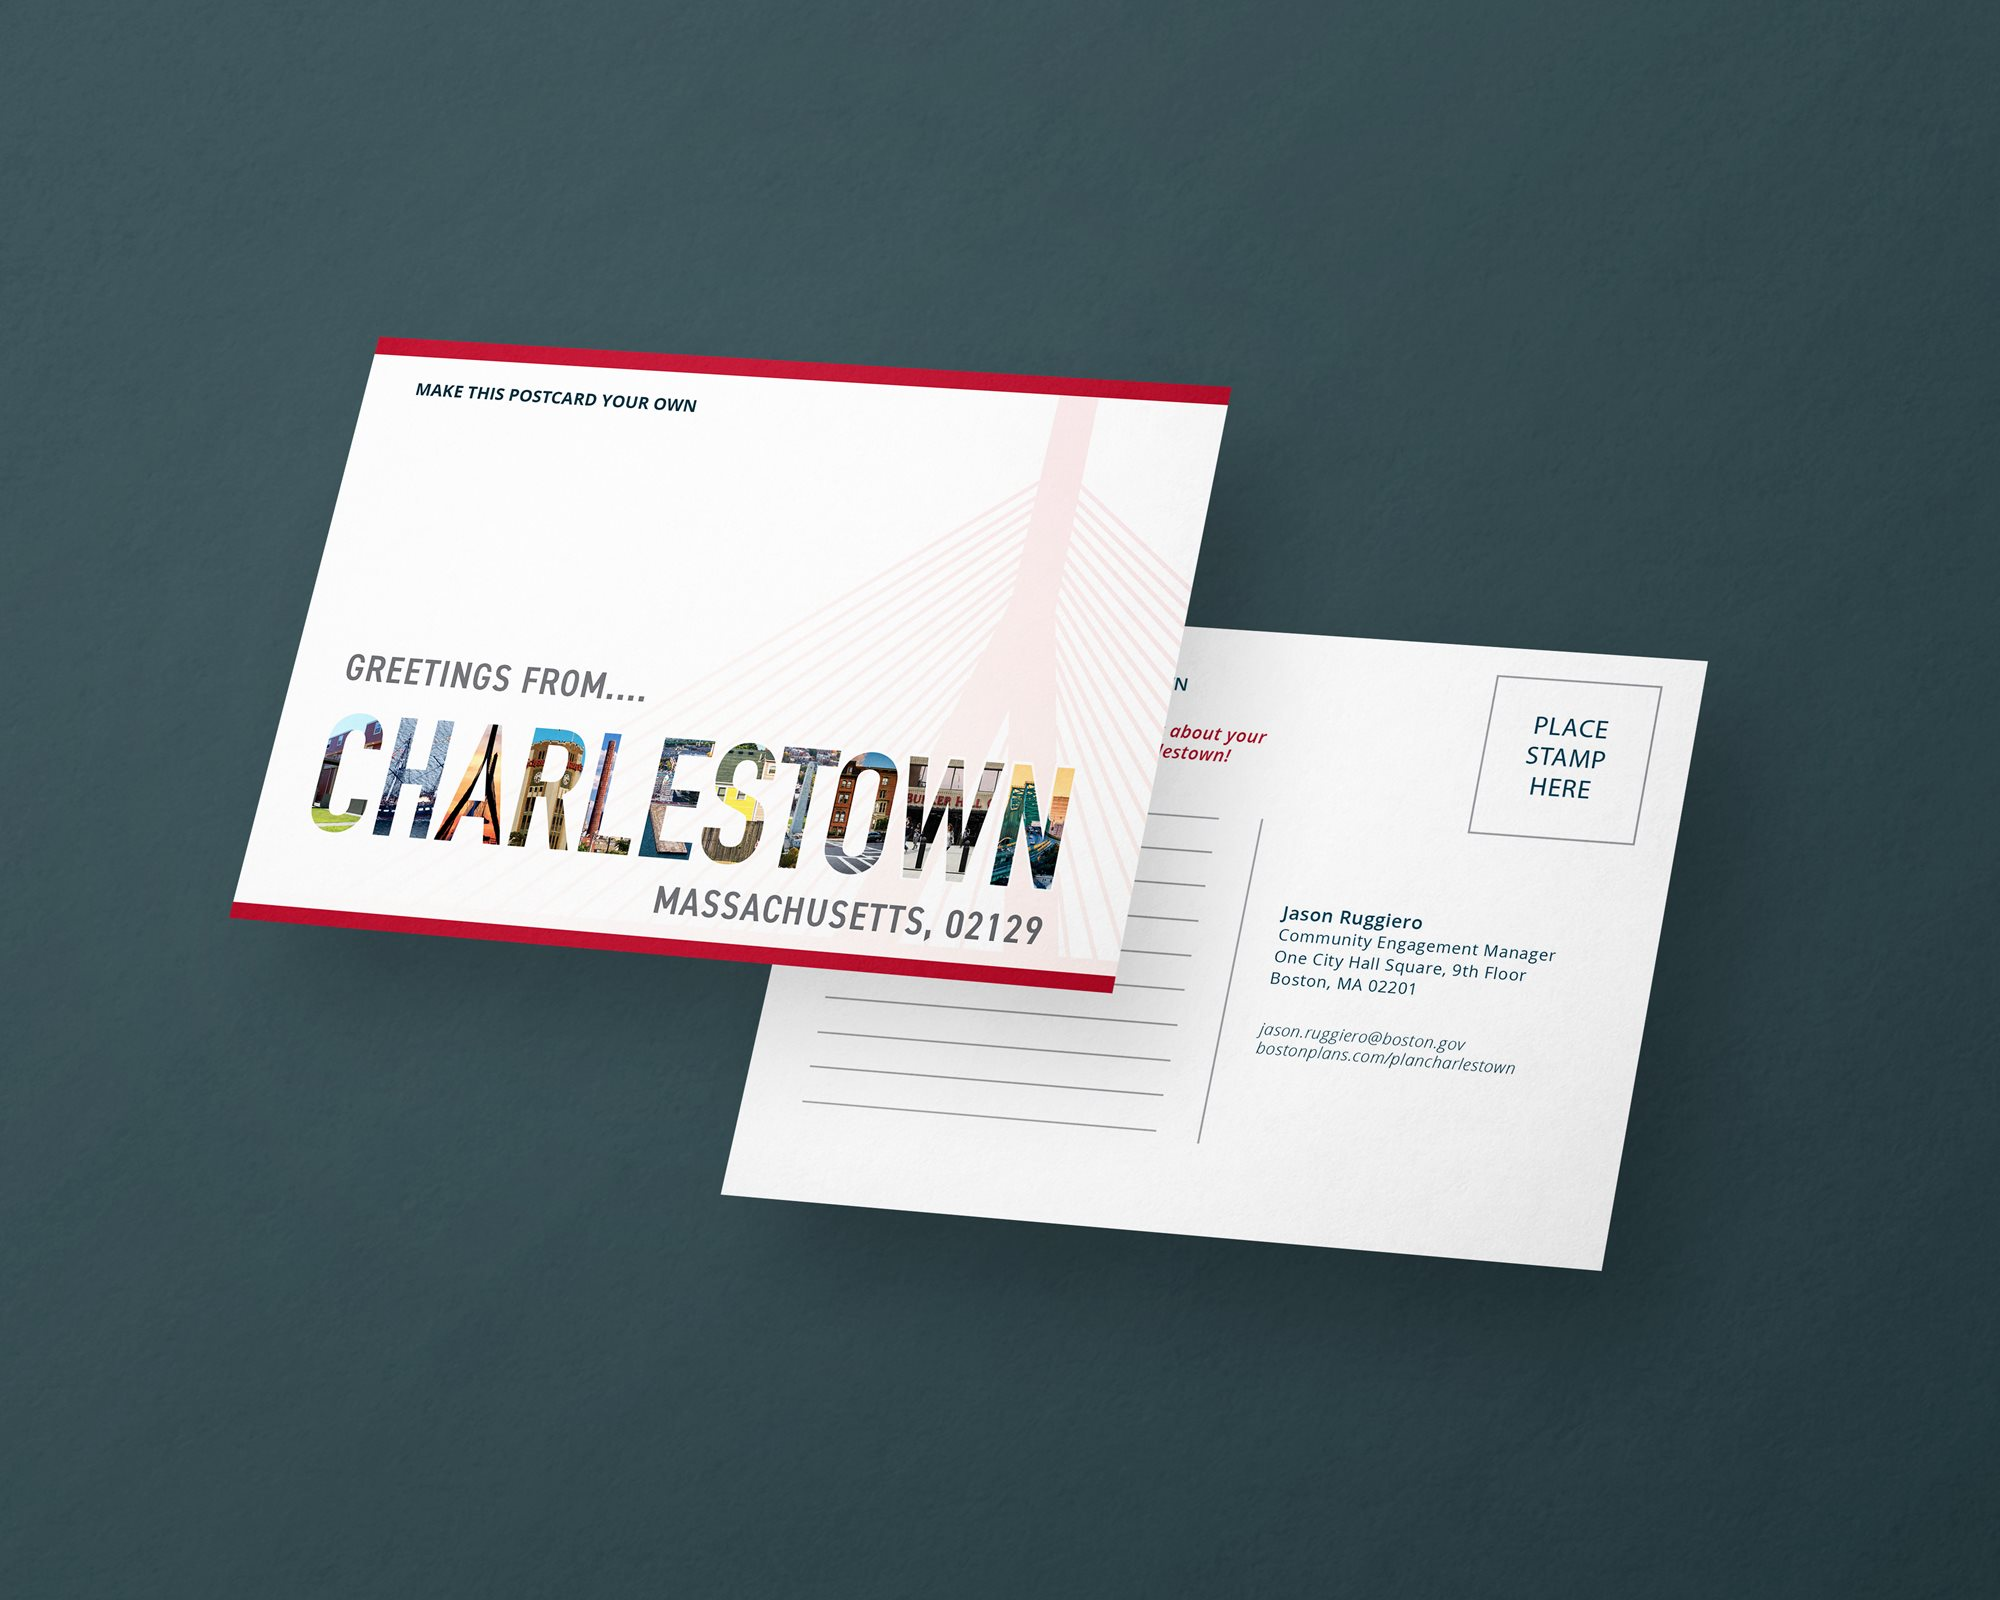 Share Your Vision for Charlestown